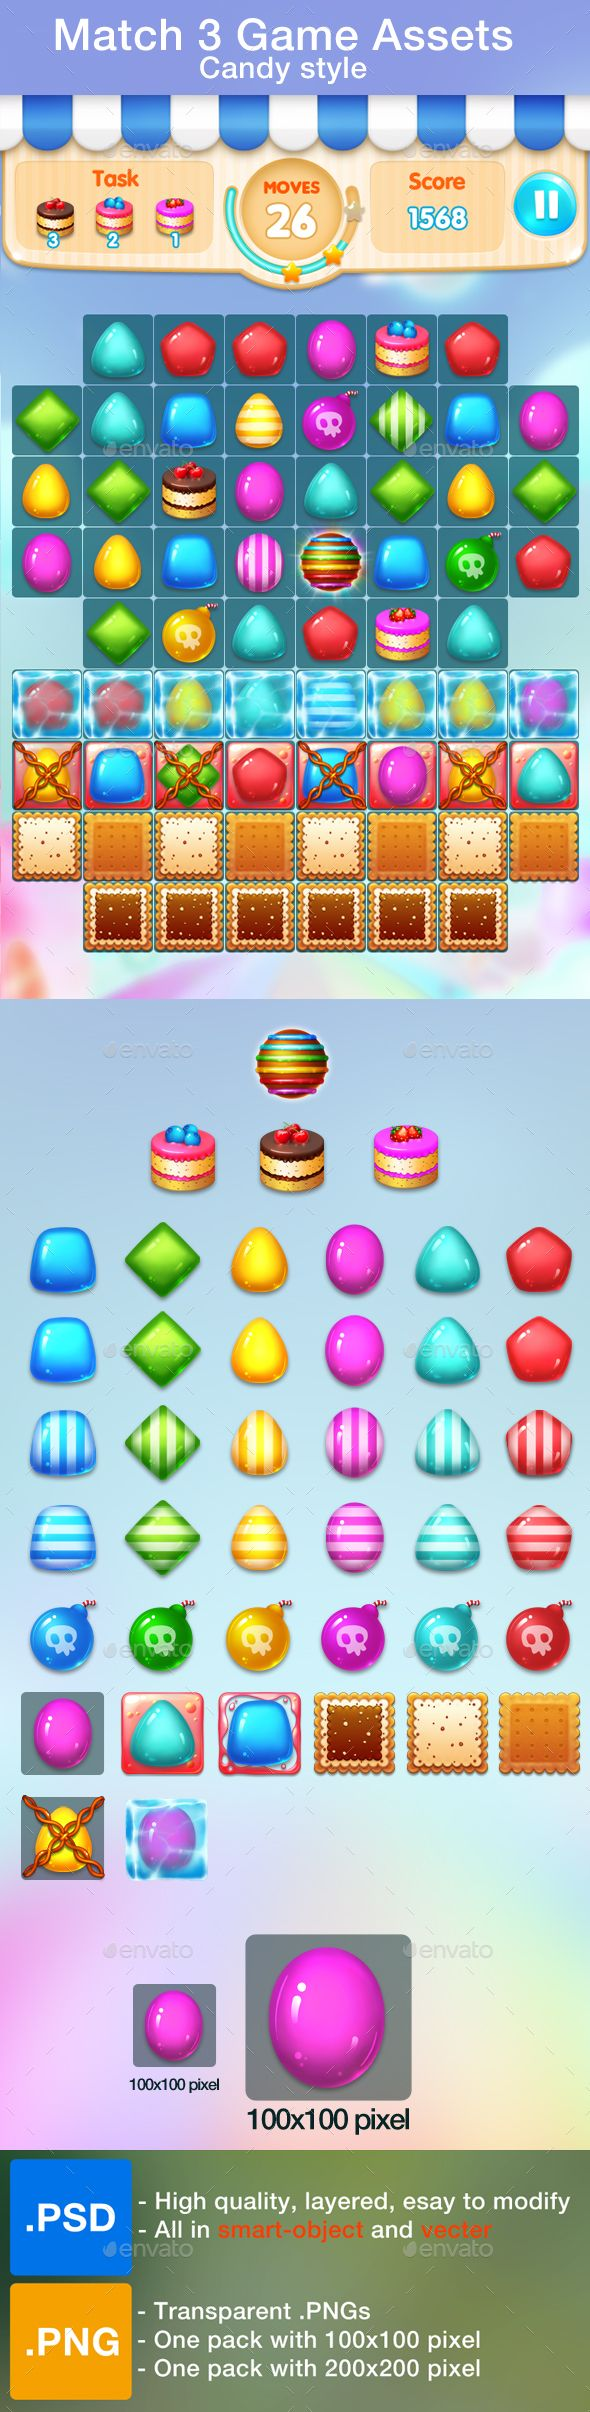 Match 3 Game Assets.  	2d, candies, candy, cute, design, game, game assets, game kits, gui, items, lock, match 3, mobile, mobile game, object, sweet